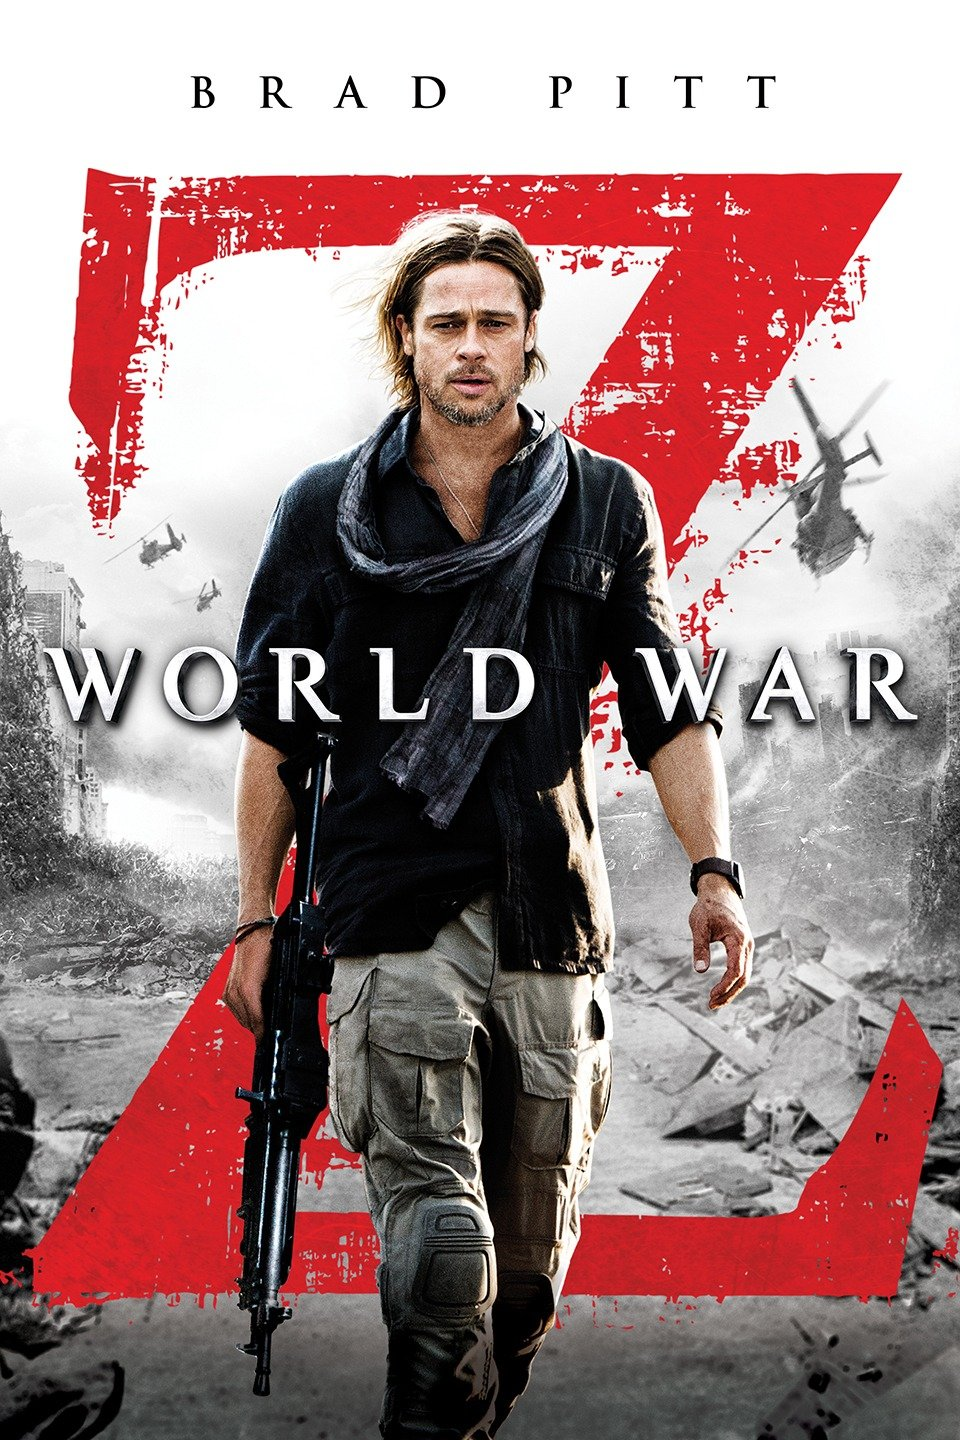 Movie poster for World War Z with actor Brad Pitt carrying rifle and walking amidst apocalyptic ruins.